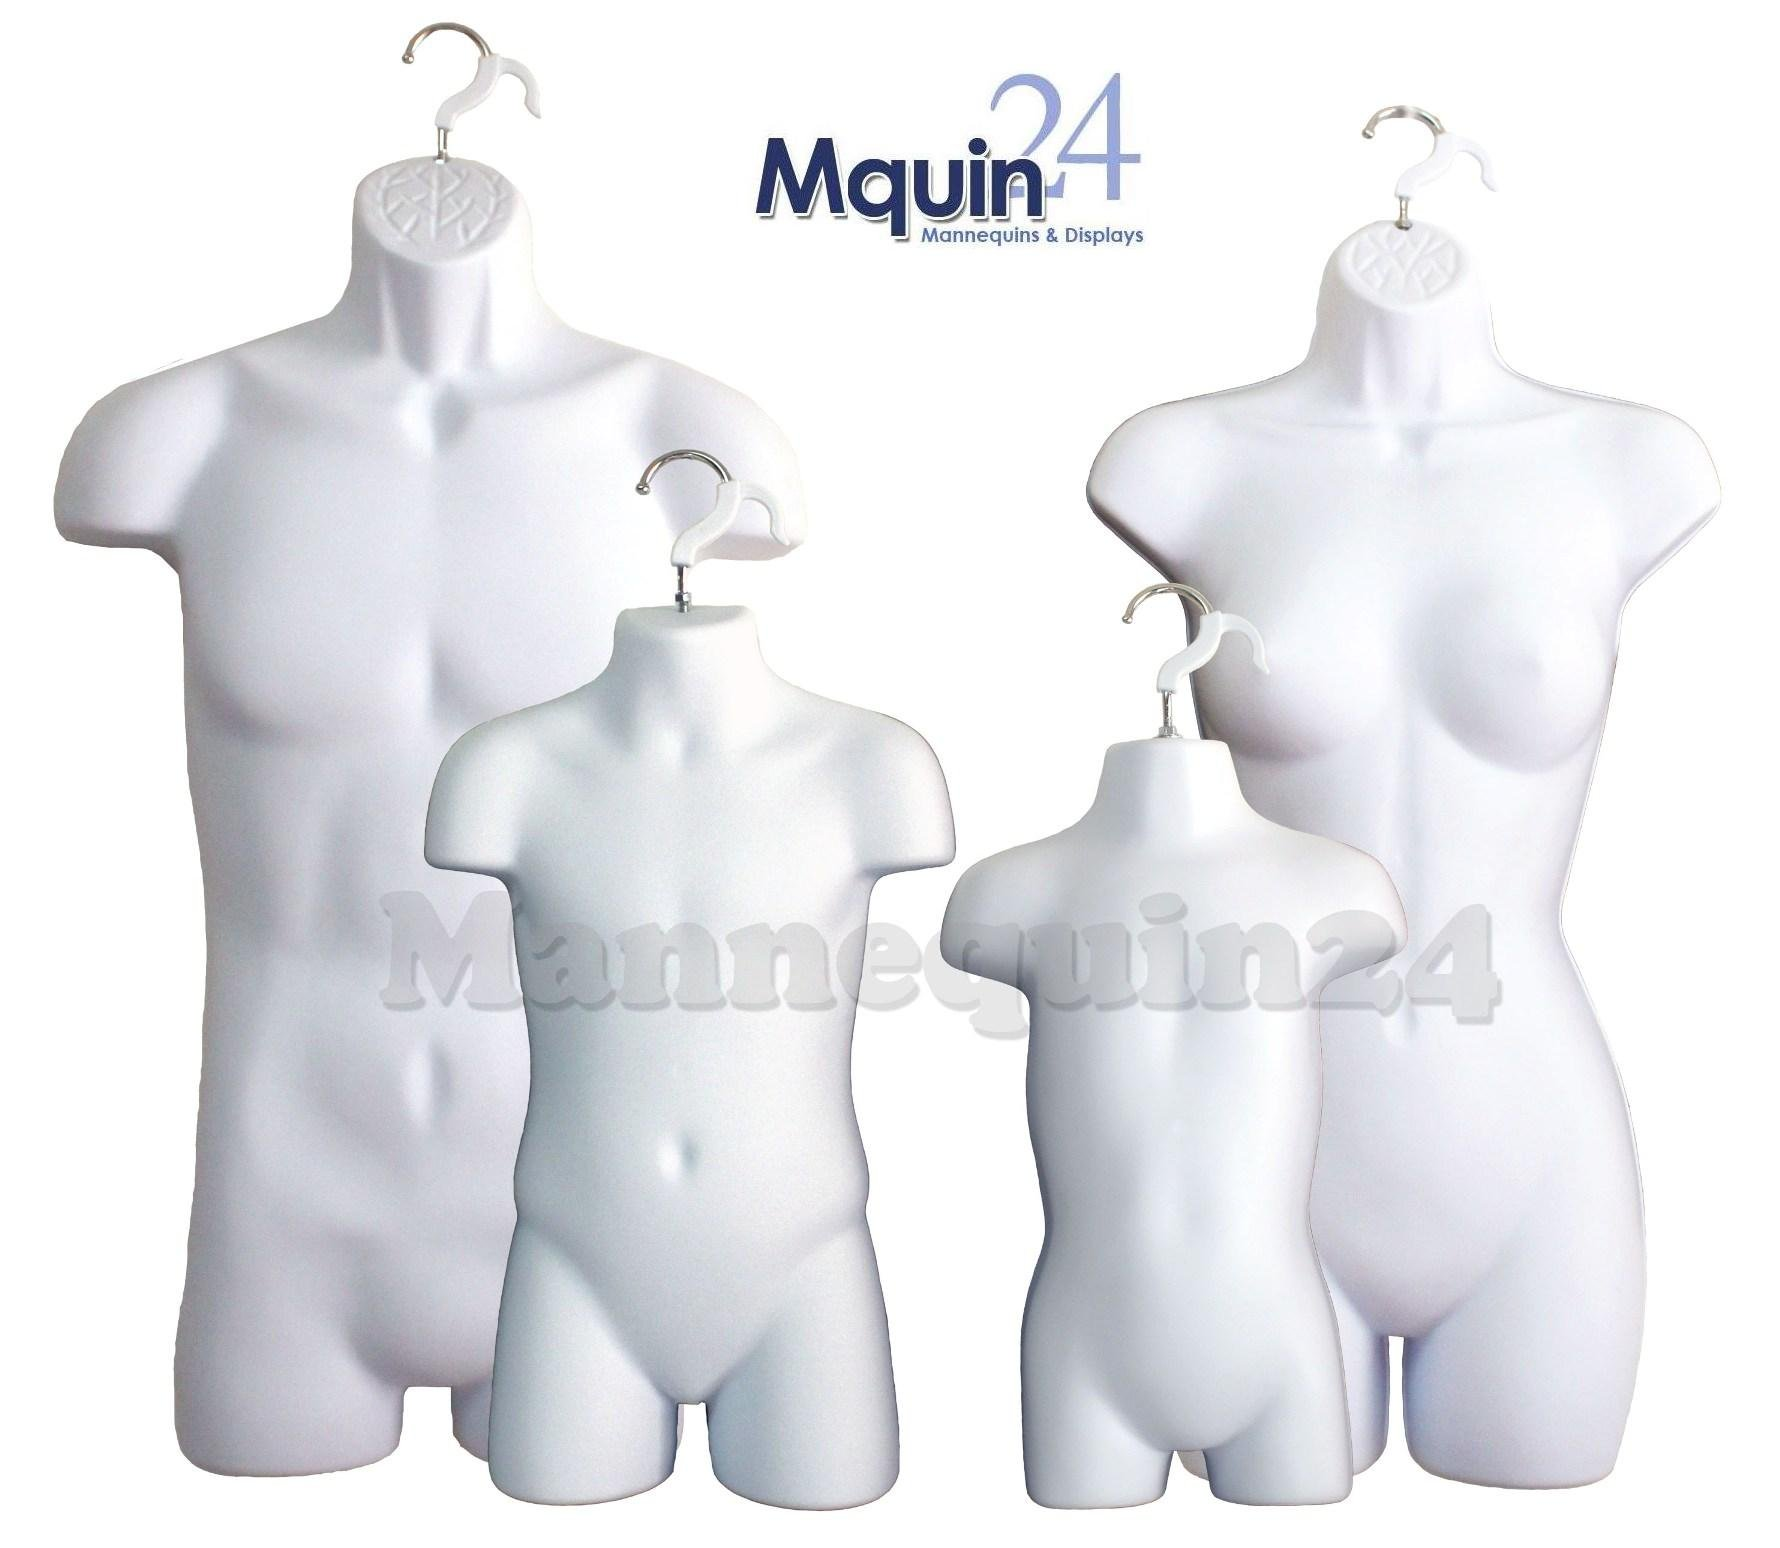 White Female Dress Male Child And Toddler Set - 4 Body Mannequin Forms